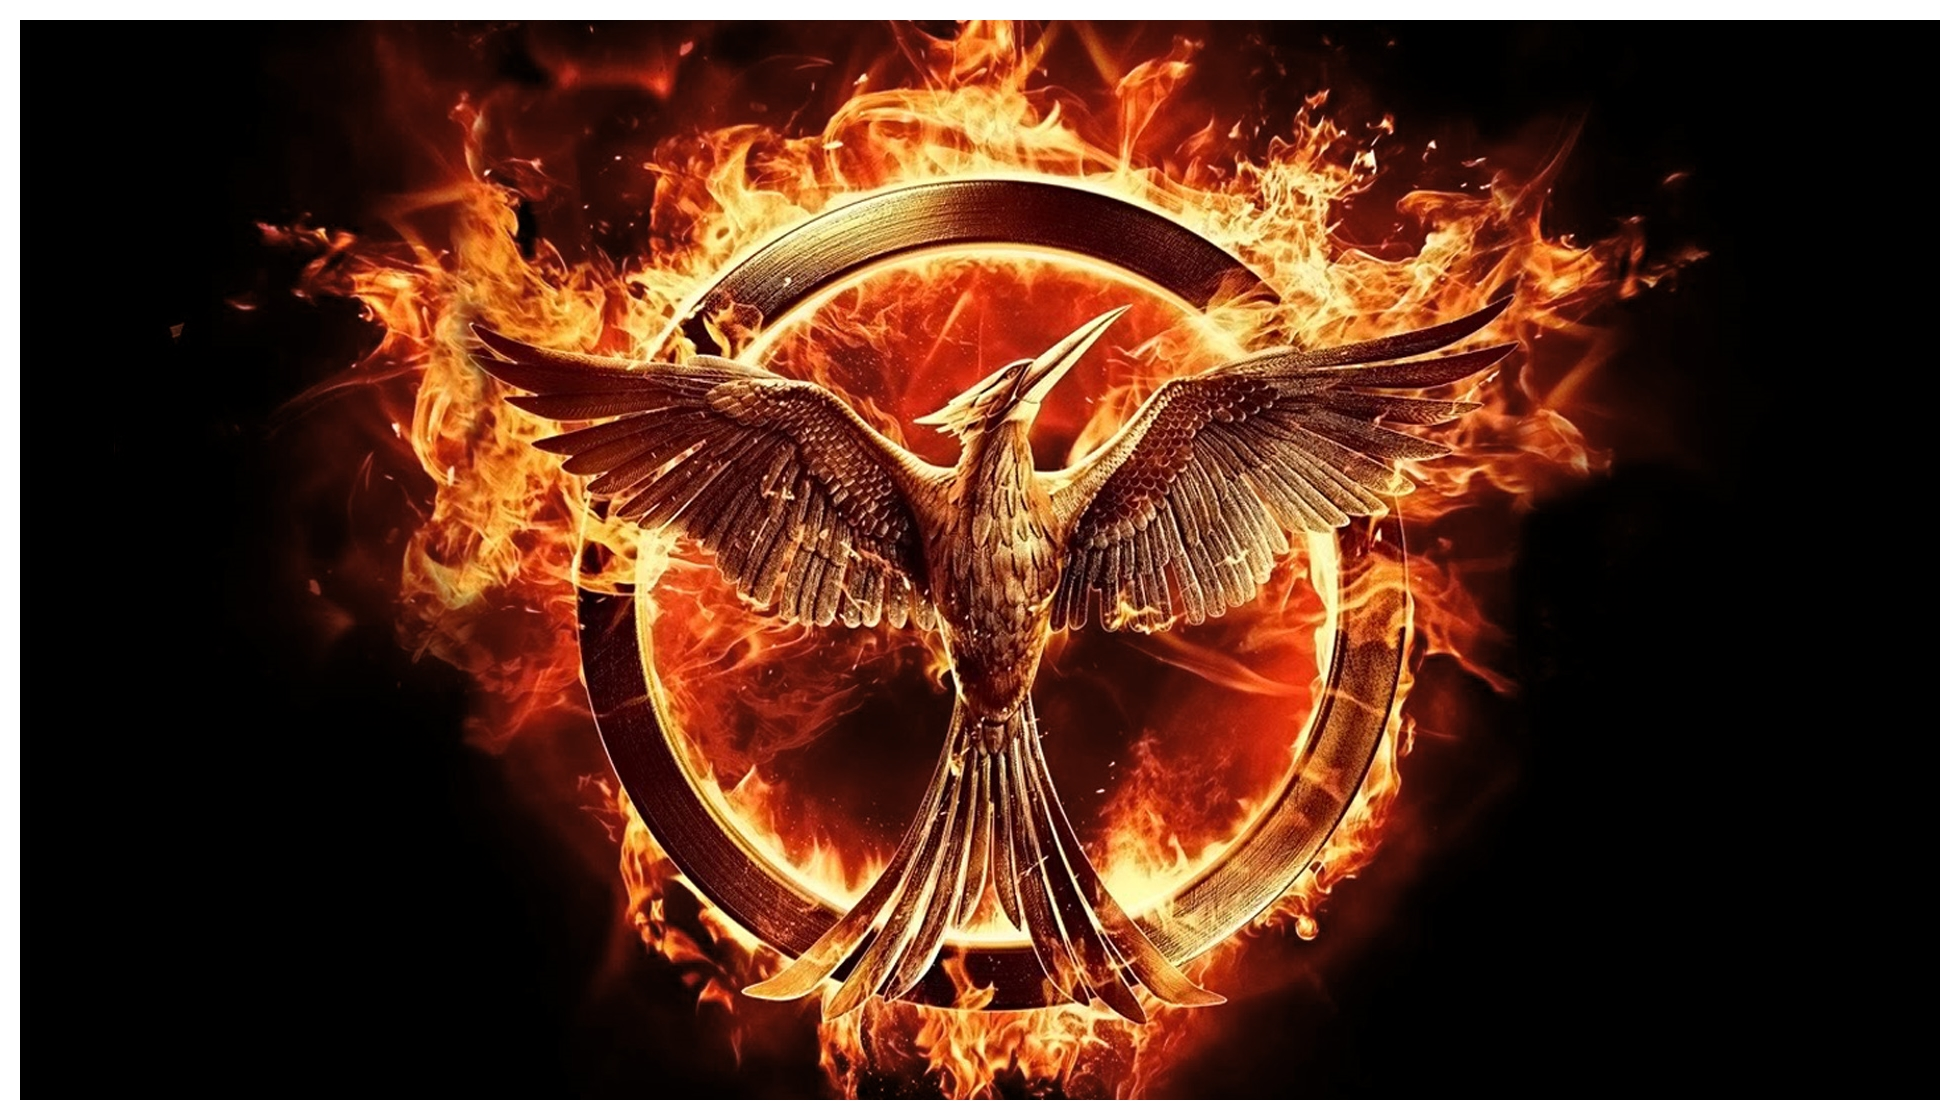 the-hunger-games-mockingjay-part-1-53b19e0a32efb-which-hg-theory-was-your-favorite-what-did-you-think-of-mockingjay-part-1.jpg